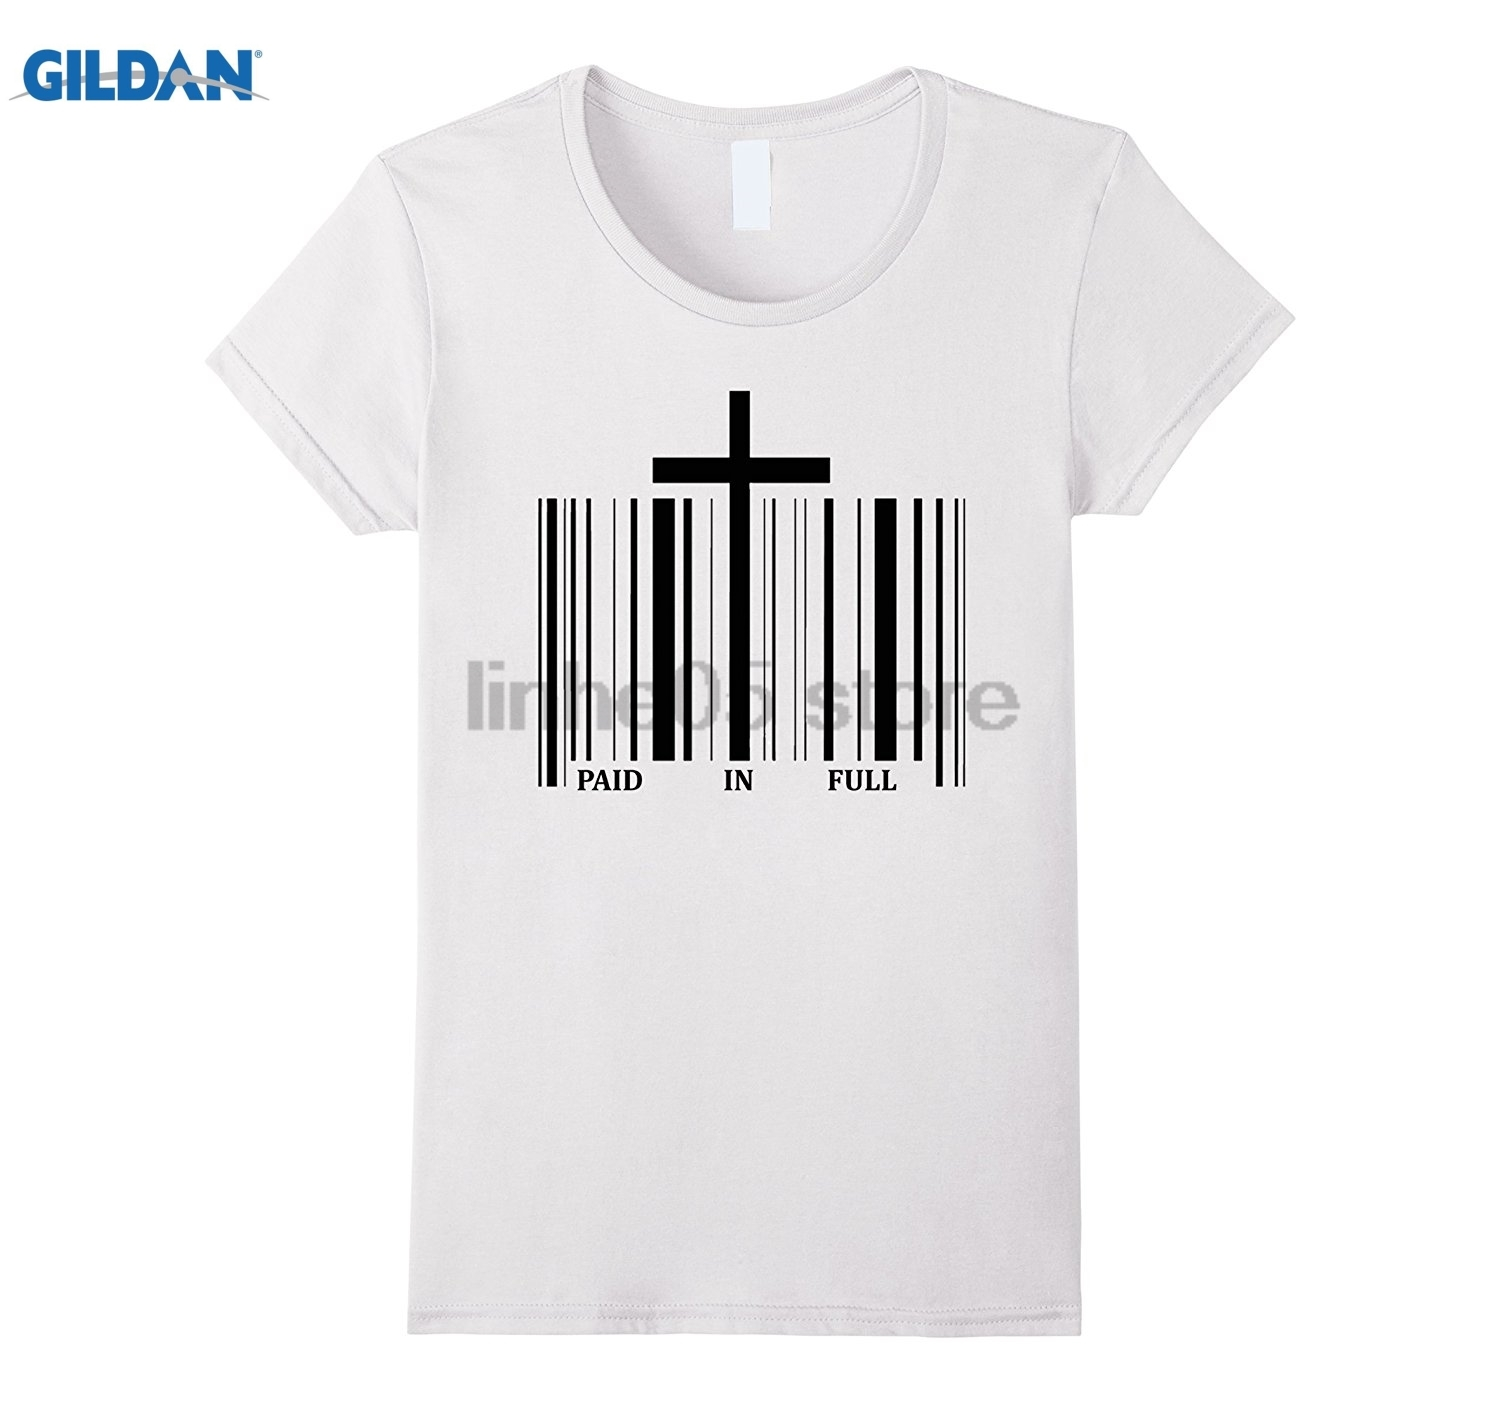 GILDAN UPC bar code Christian cross shirt - PAID IN FULL Womens T-shirt